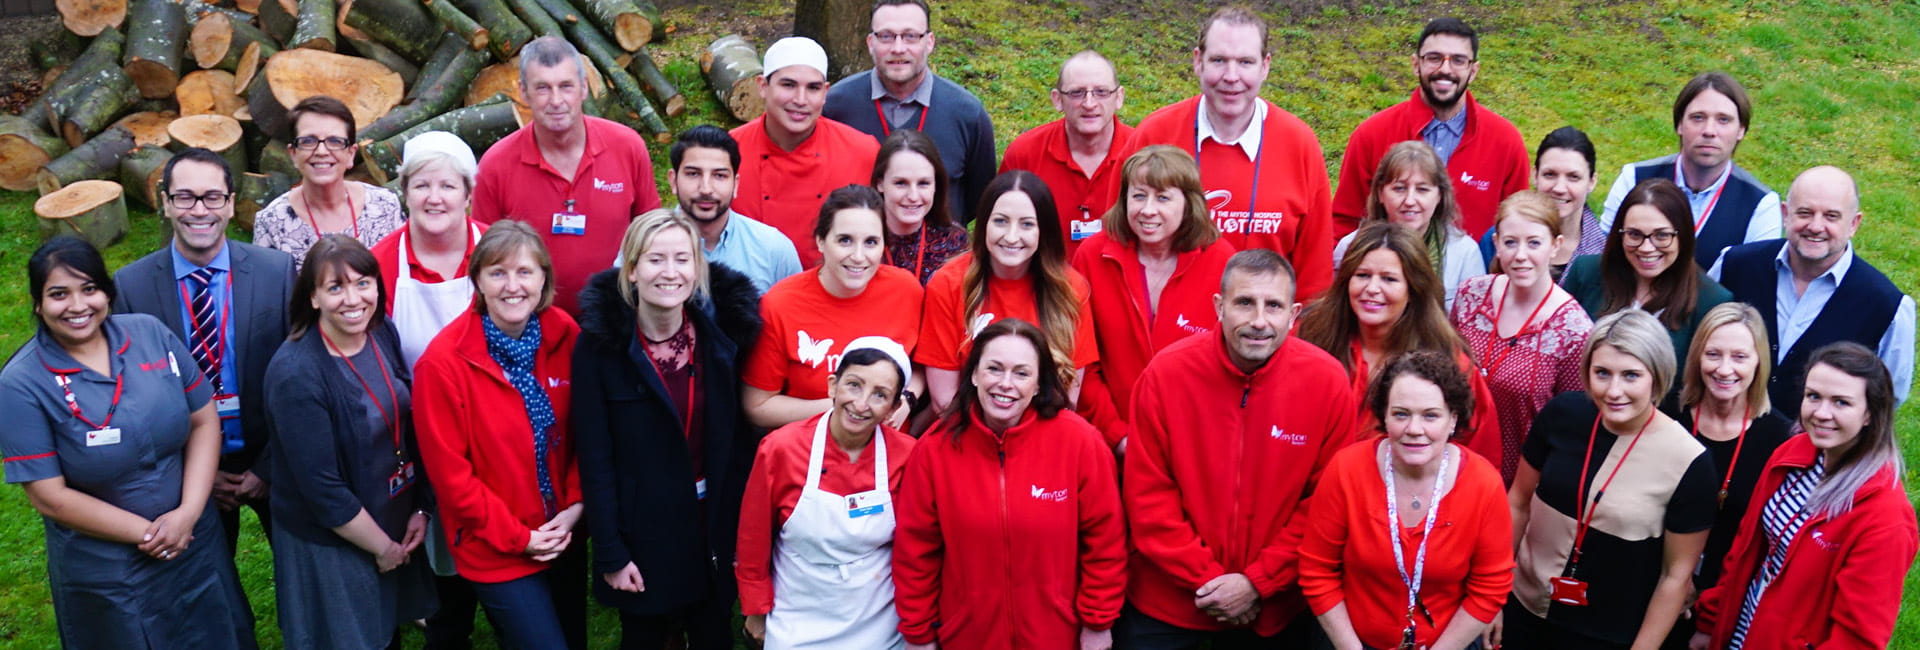 The Myton Hospices - Flex Slider - Meet the Team Warwick Group Shot